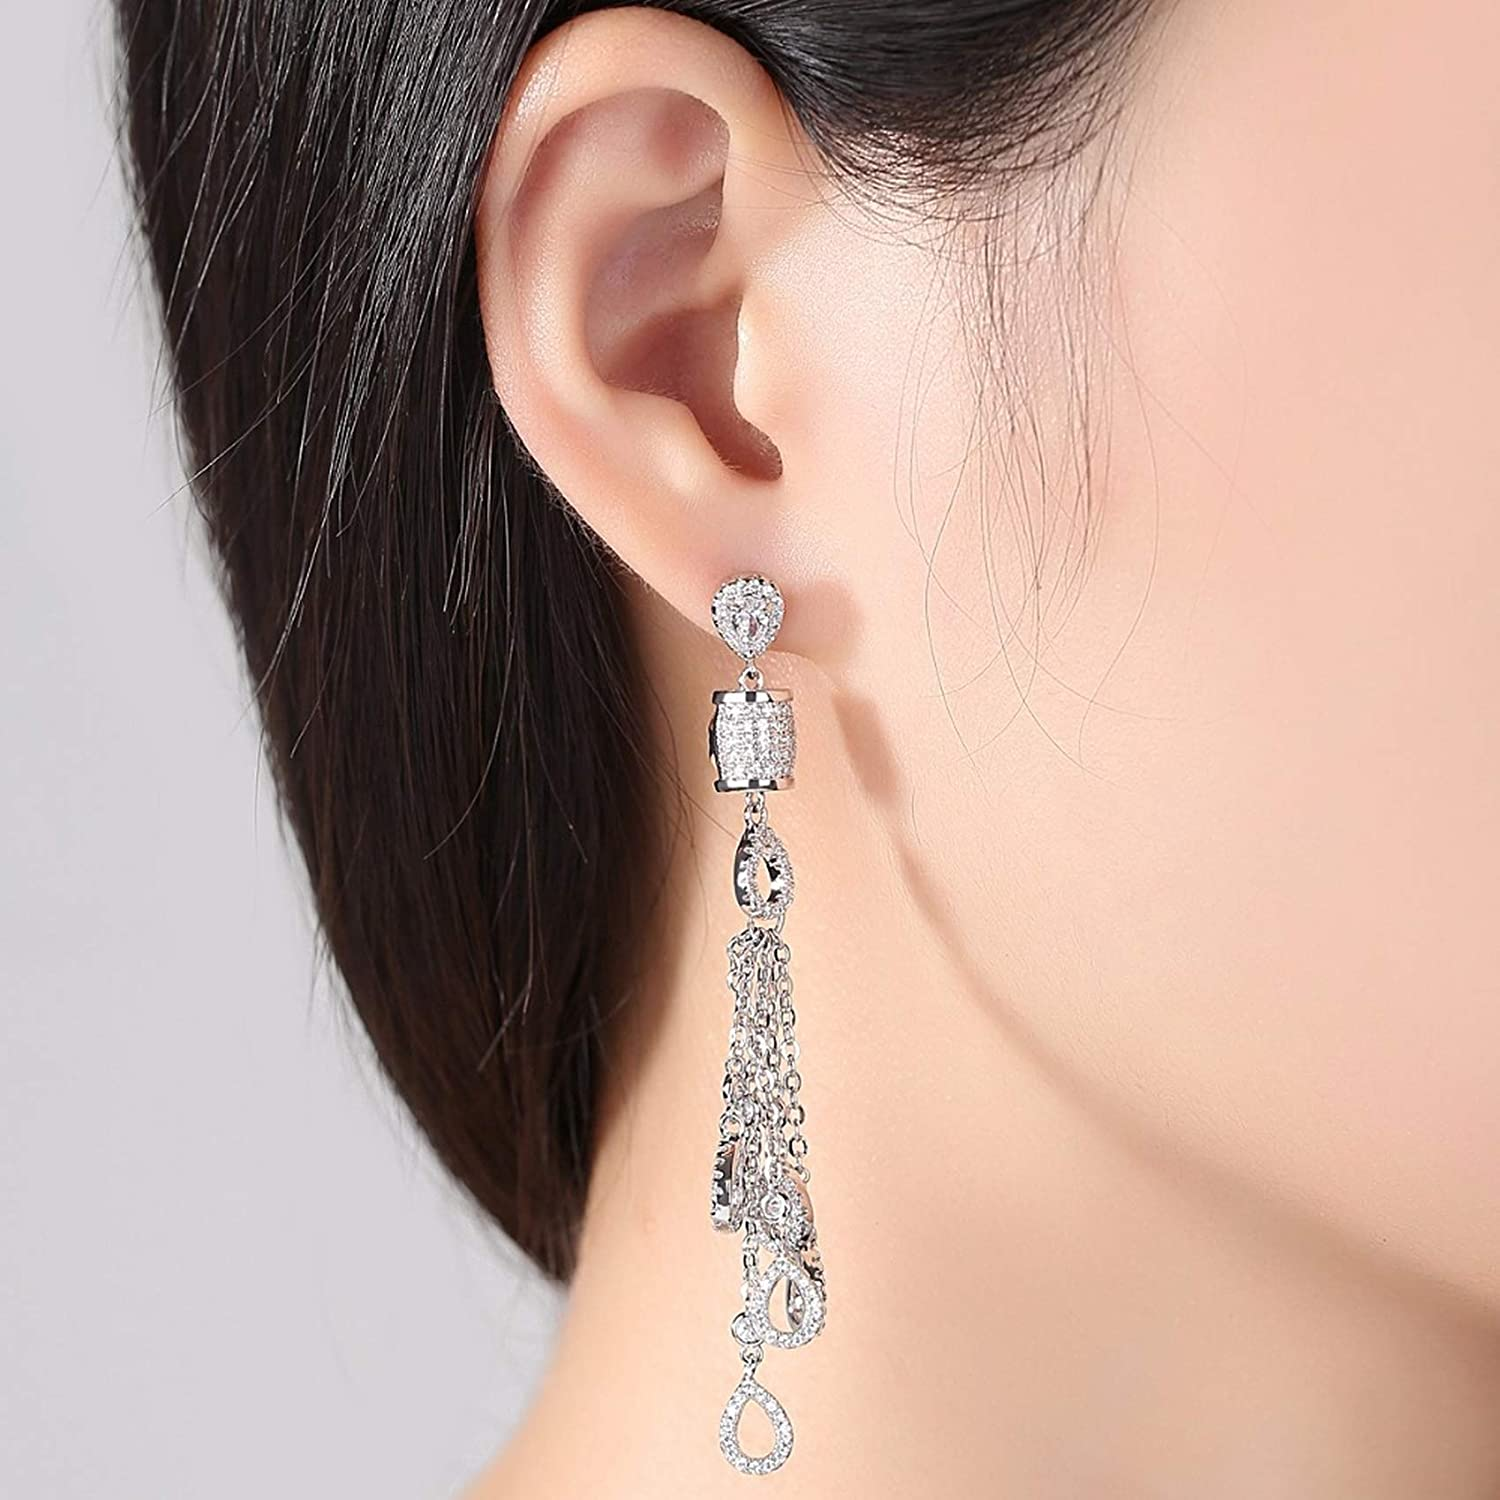 Silver Earrings By CS-DB White Waterdrop Tassels Dangle Tiny Cubic Zirconia Micro Paved Party Stud Earrings For Womens